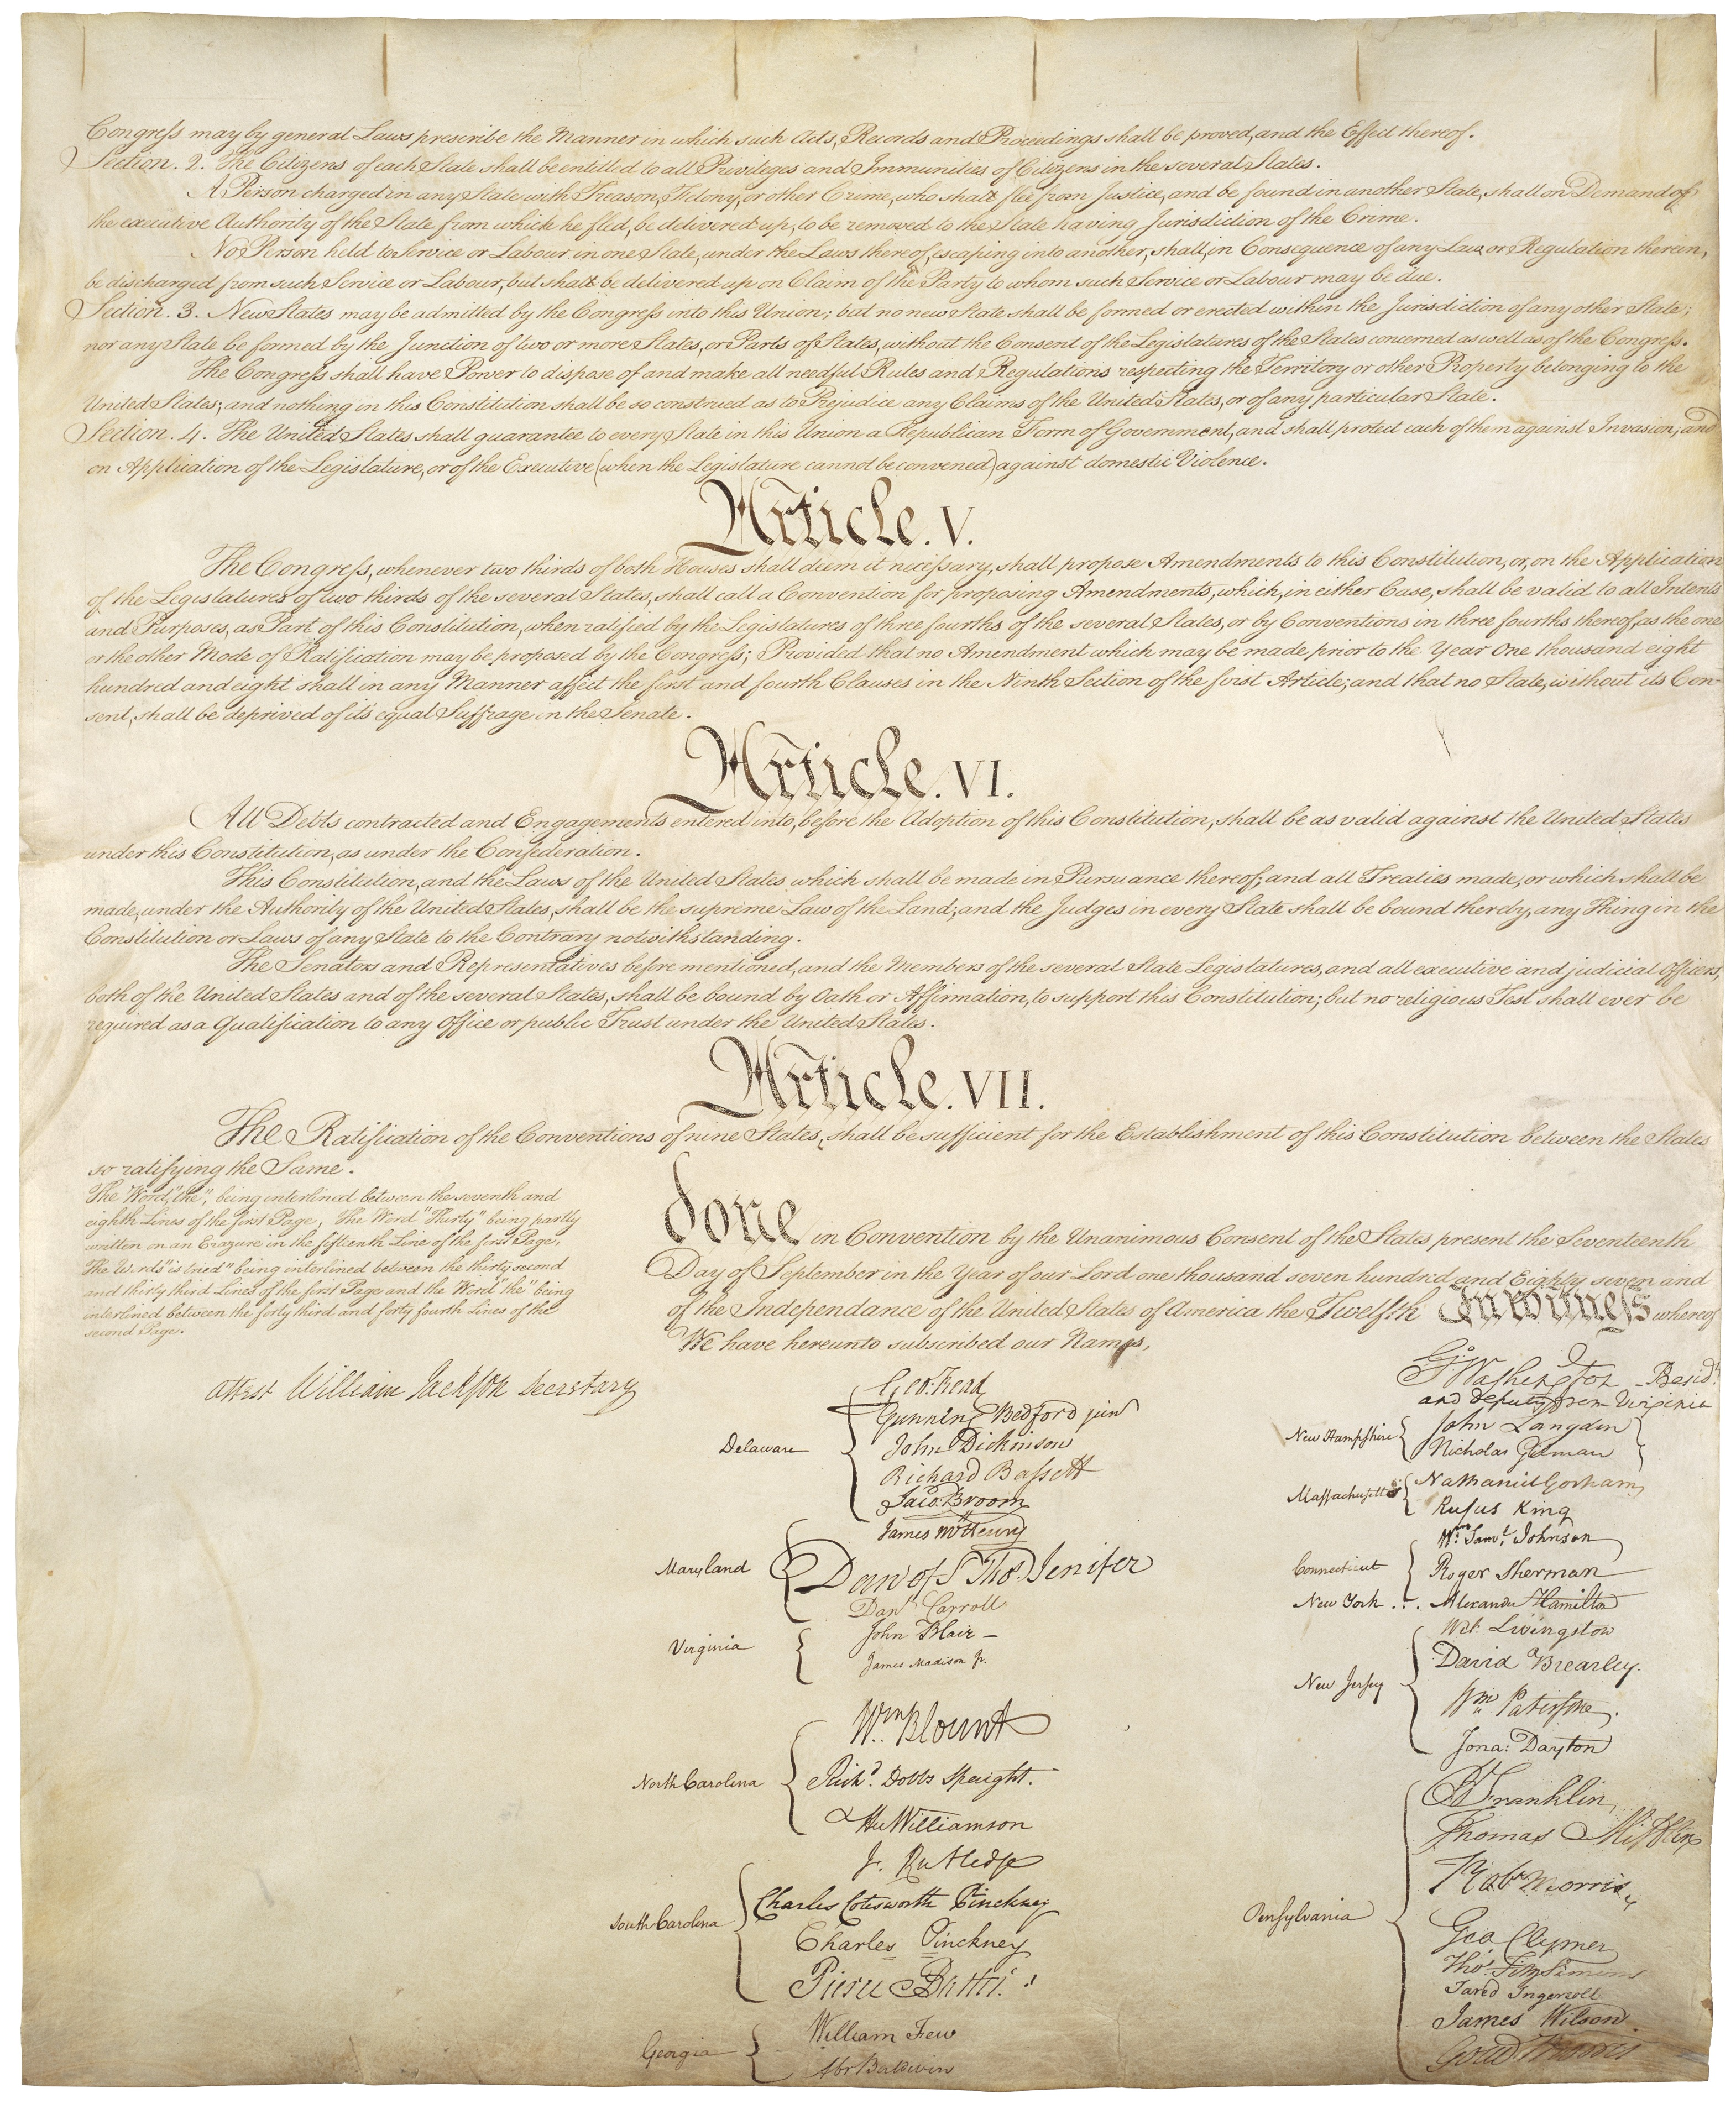 the united states constitution of 1787 On september 17, 1787, the constitution of the united states of america was signed by 38 of the 41 delegates present at the conclusion of the convention.